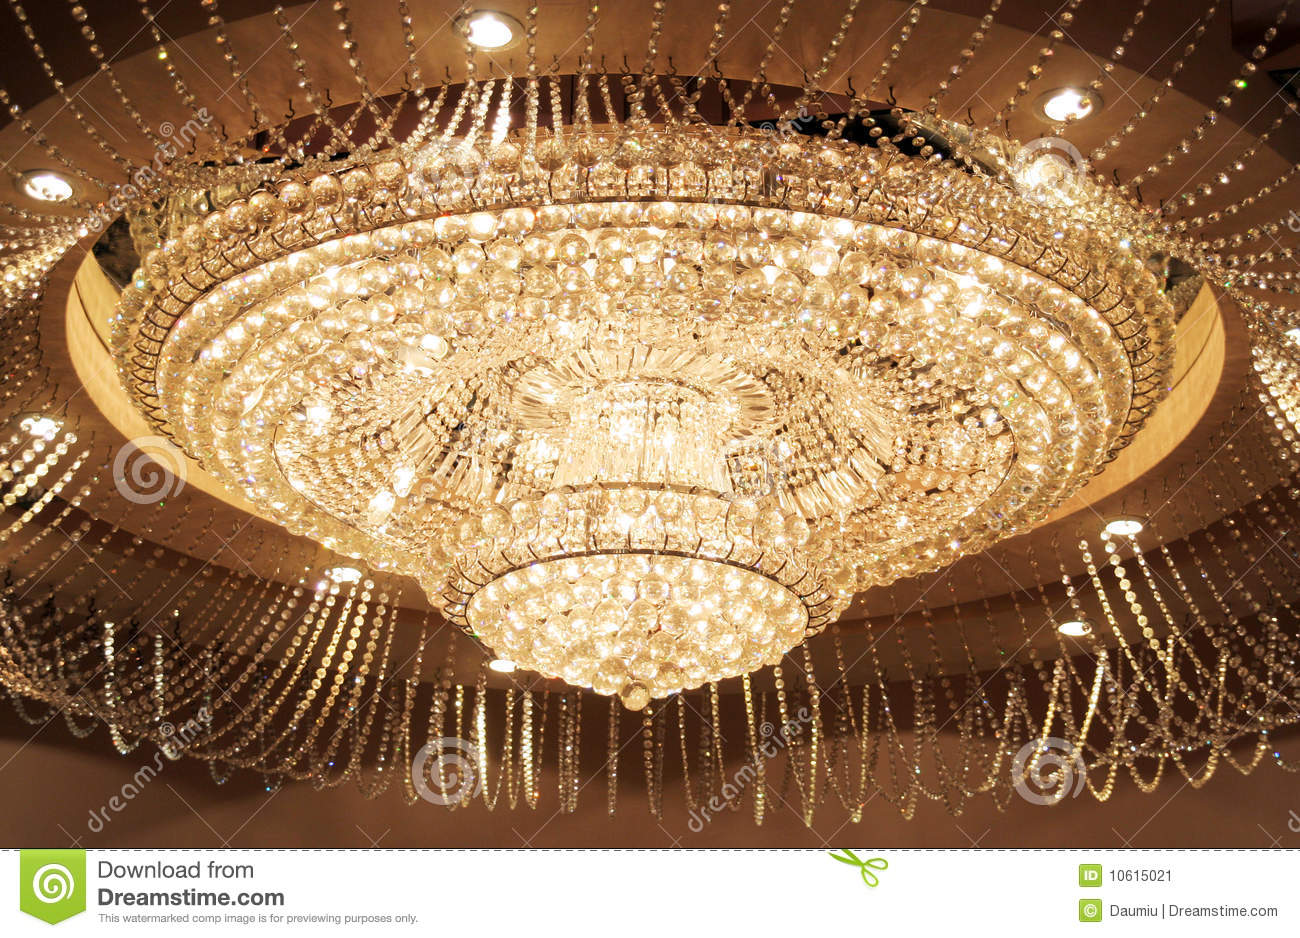 Grand crystal chandelier stock image image of texture 10615021 aloadofball Gallery